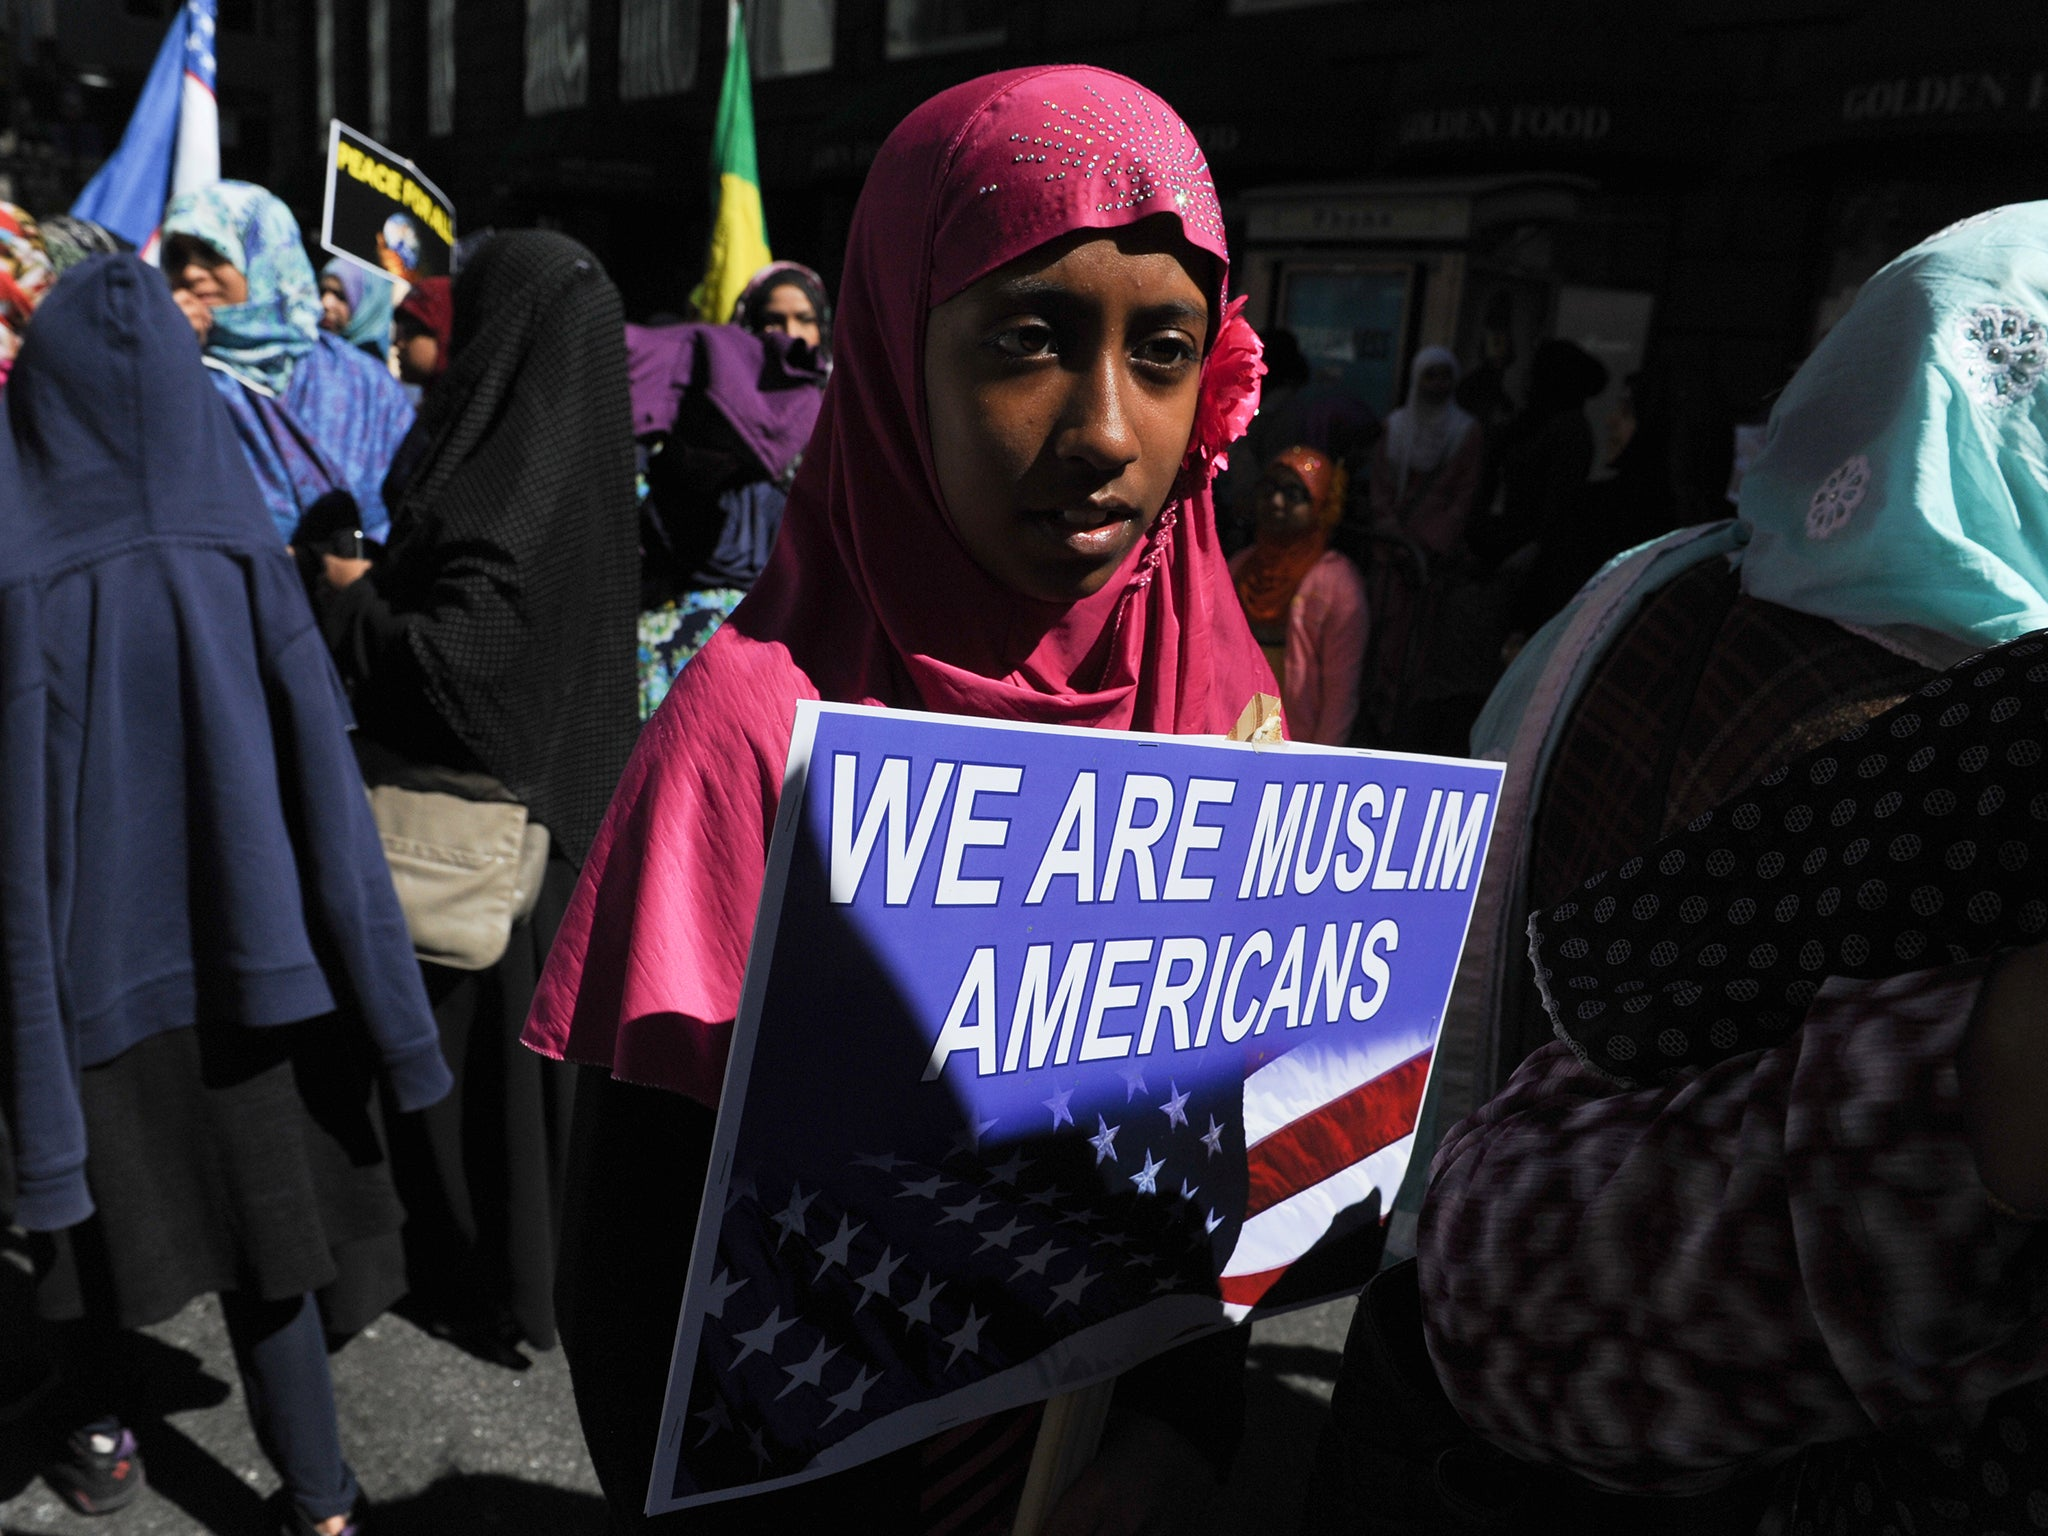 muslims in america North america has been home to muslims for a long time muslims first arrived in north america centuries before columbus due.